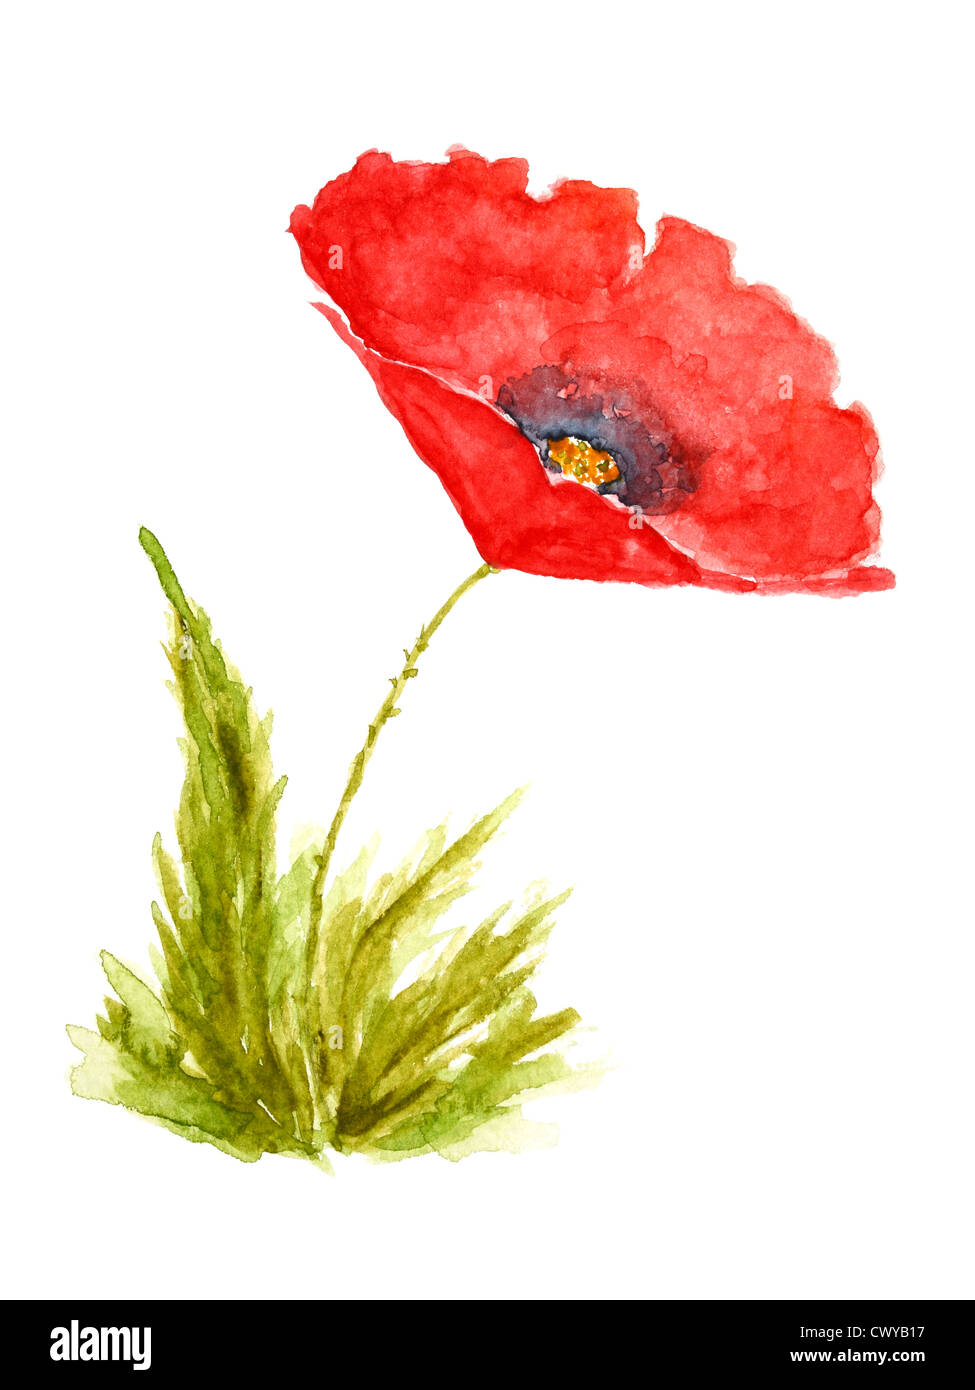 Poppy flower watercolor stock photos poppy flower watercolor stock poppy flower watercolor hand drawn and painted isolated on white background stock image mightylinksfo